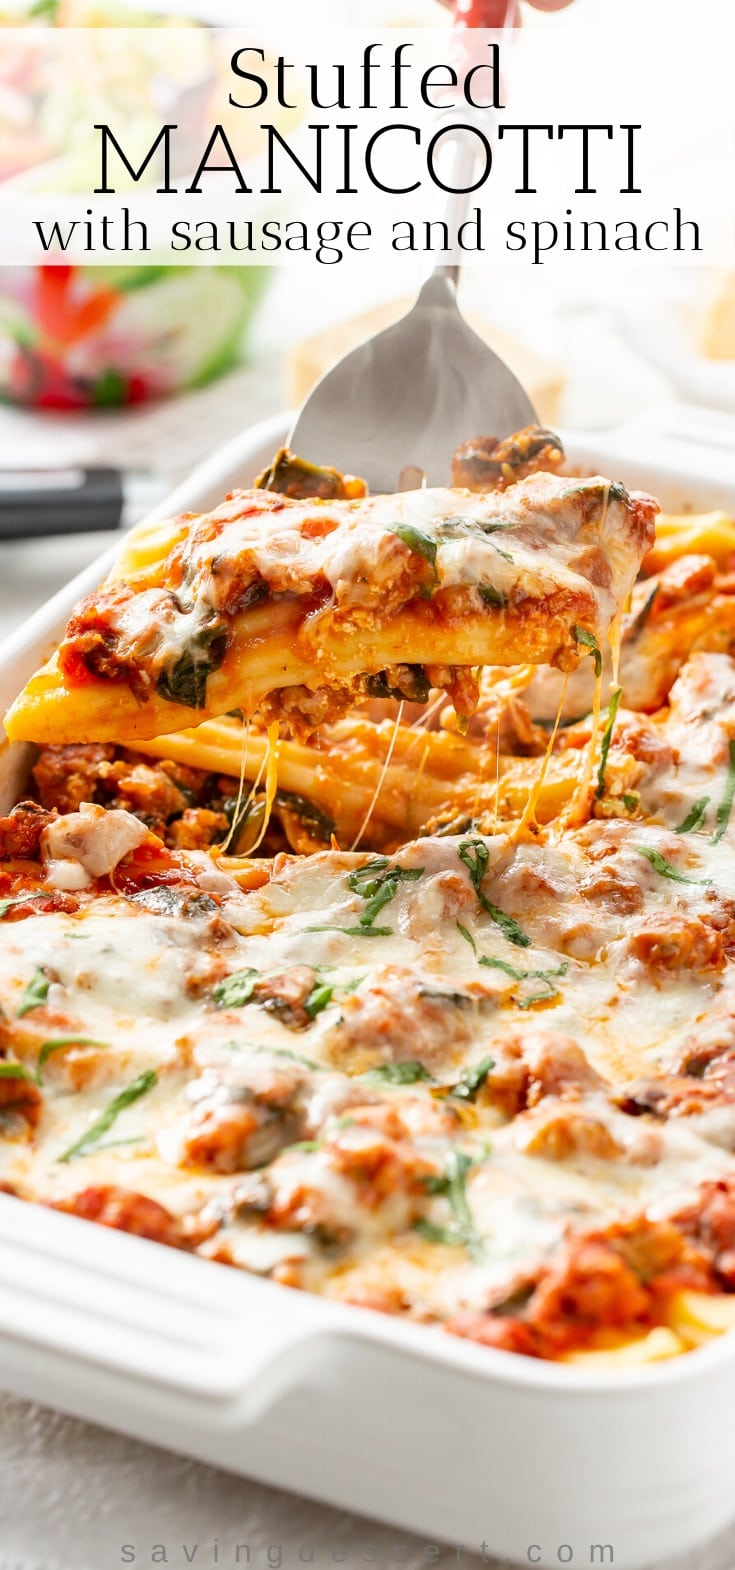 A casserole with stuff manicotti covered in cheese